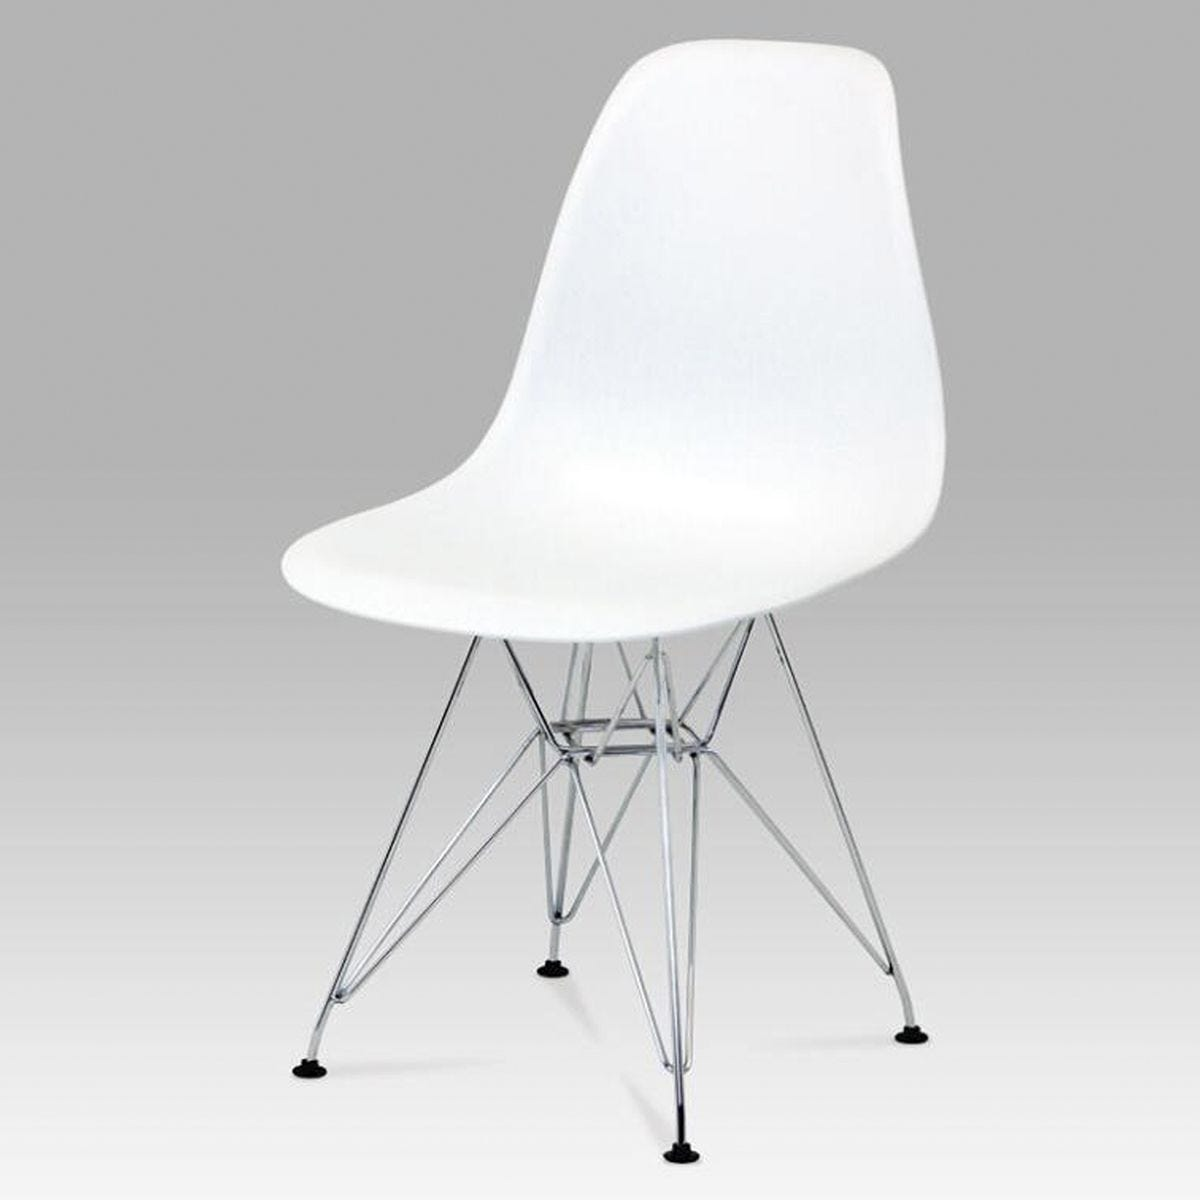 Set Of 4 Bianca Plastic Chairs with Steel Chrome Legs - White